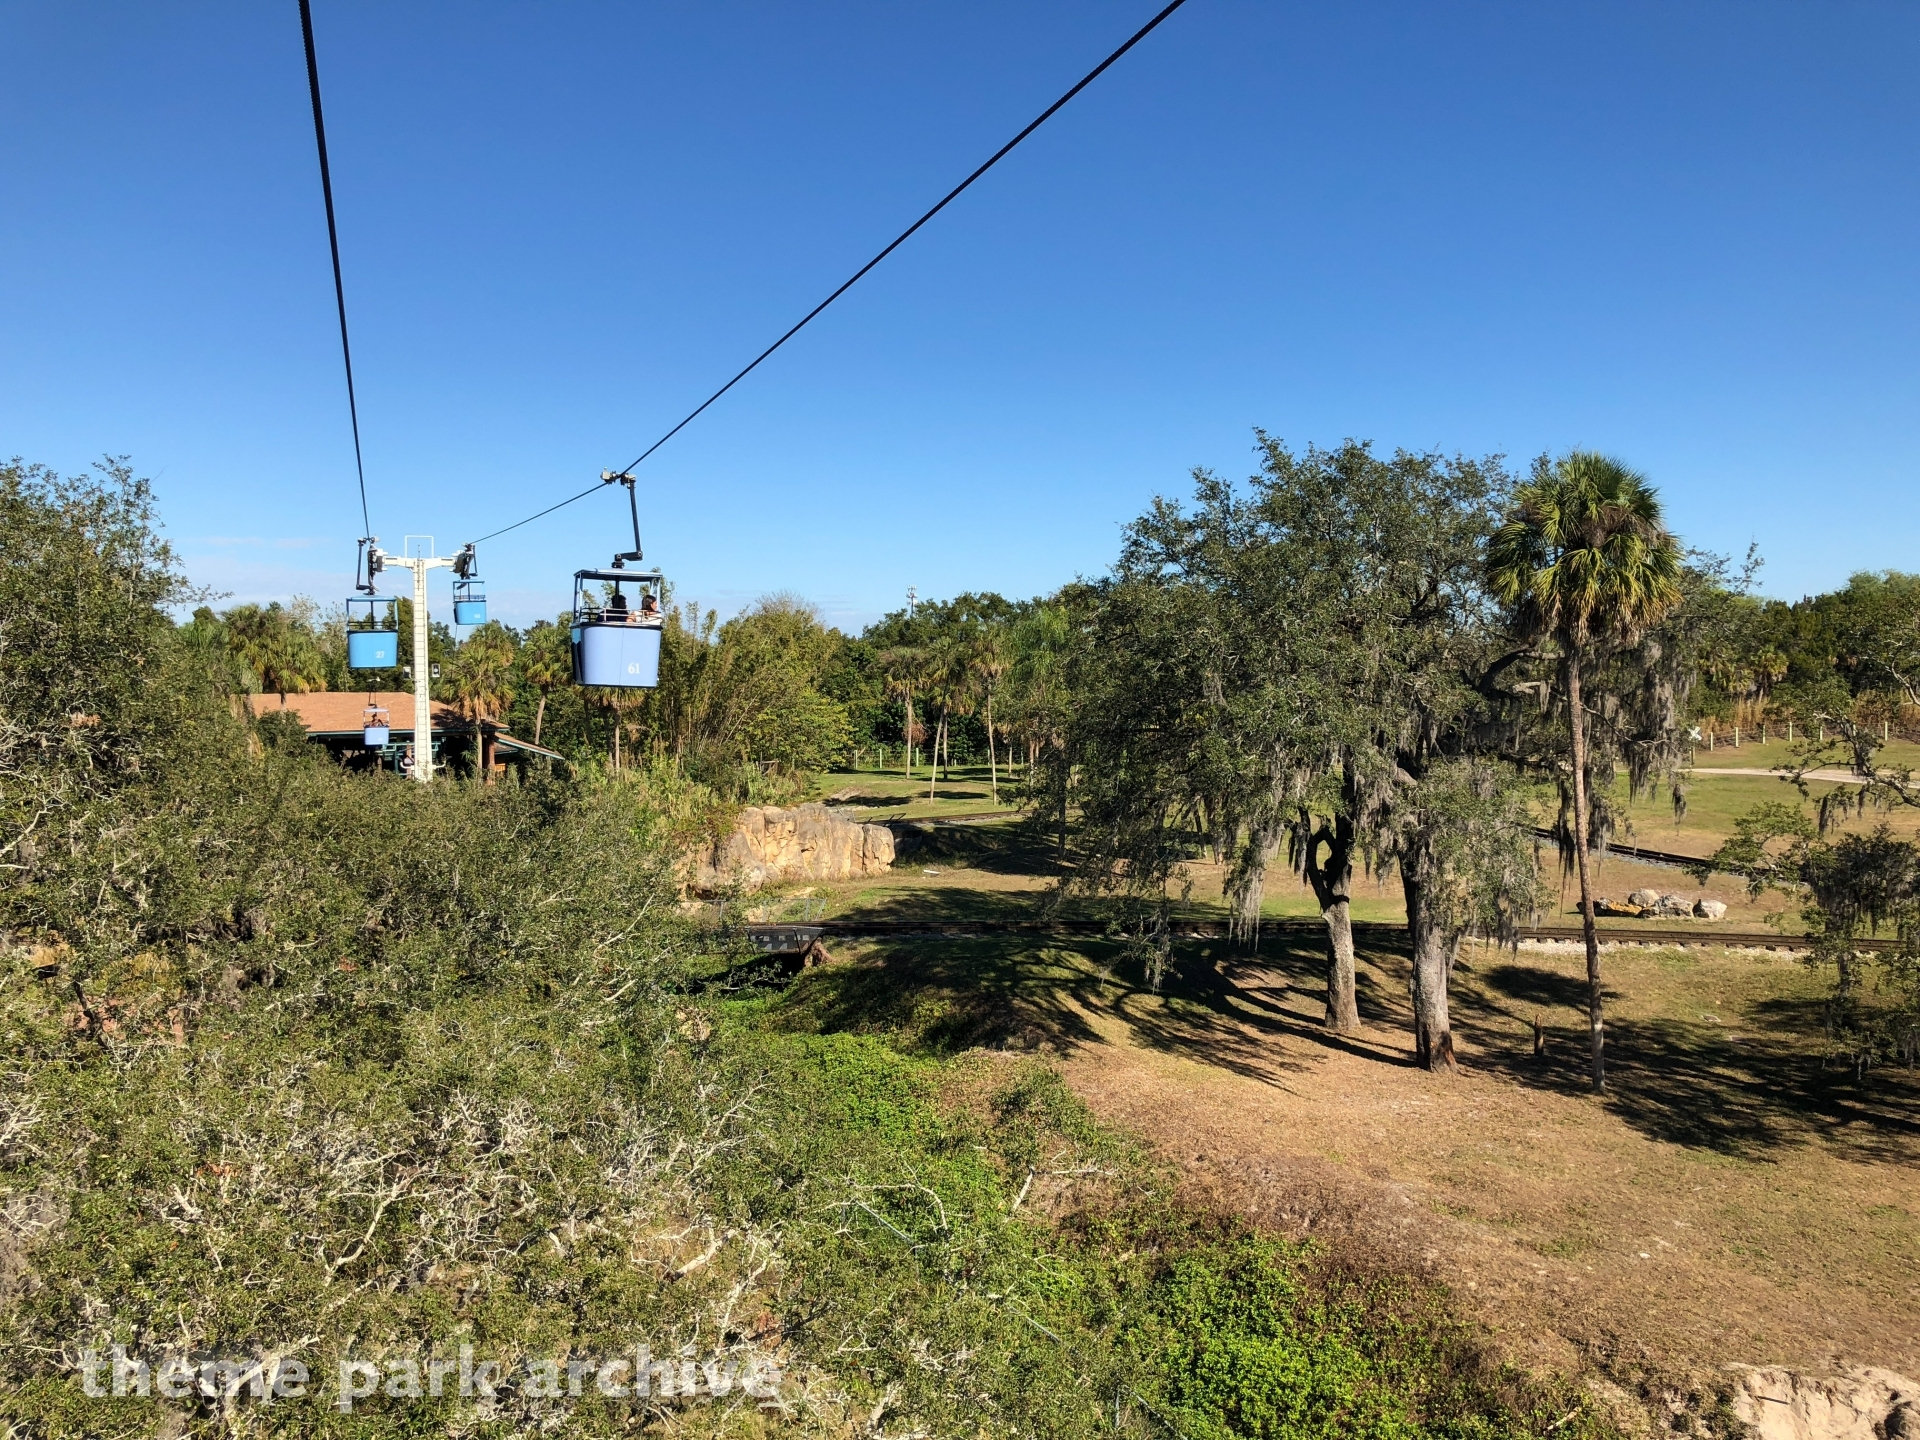 Serengeti Plain at Busch Gardens Tampa